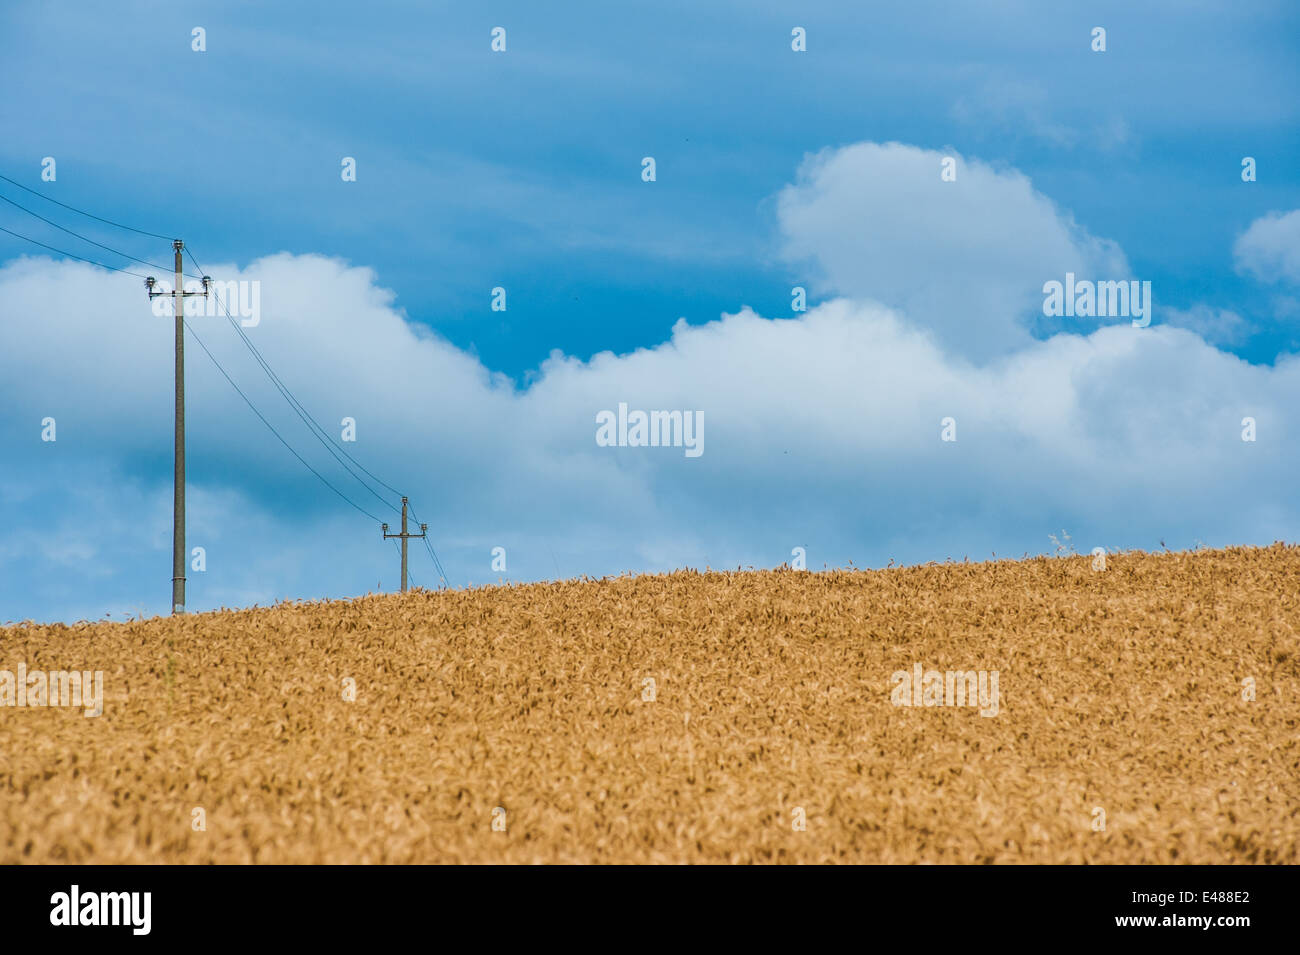 Wheat field against cloudy blue sky on the hills of Piacenza (colli piacentini), Italy - Stock Image